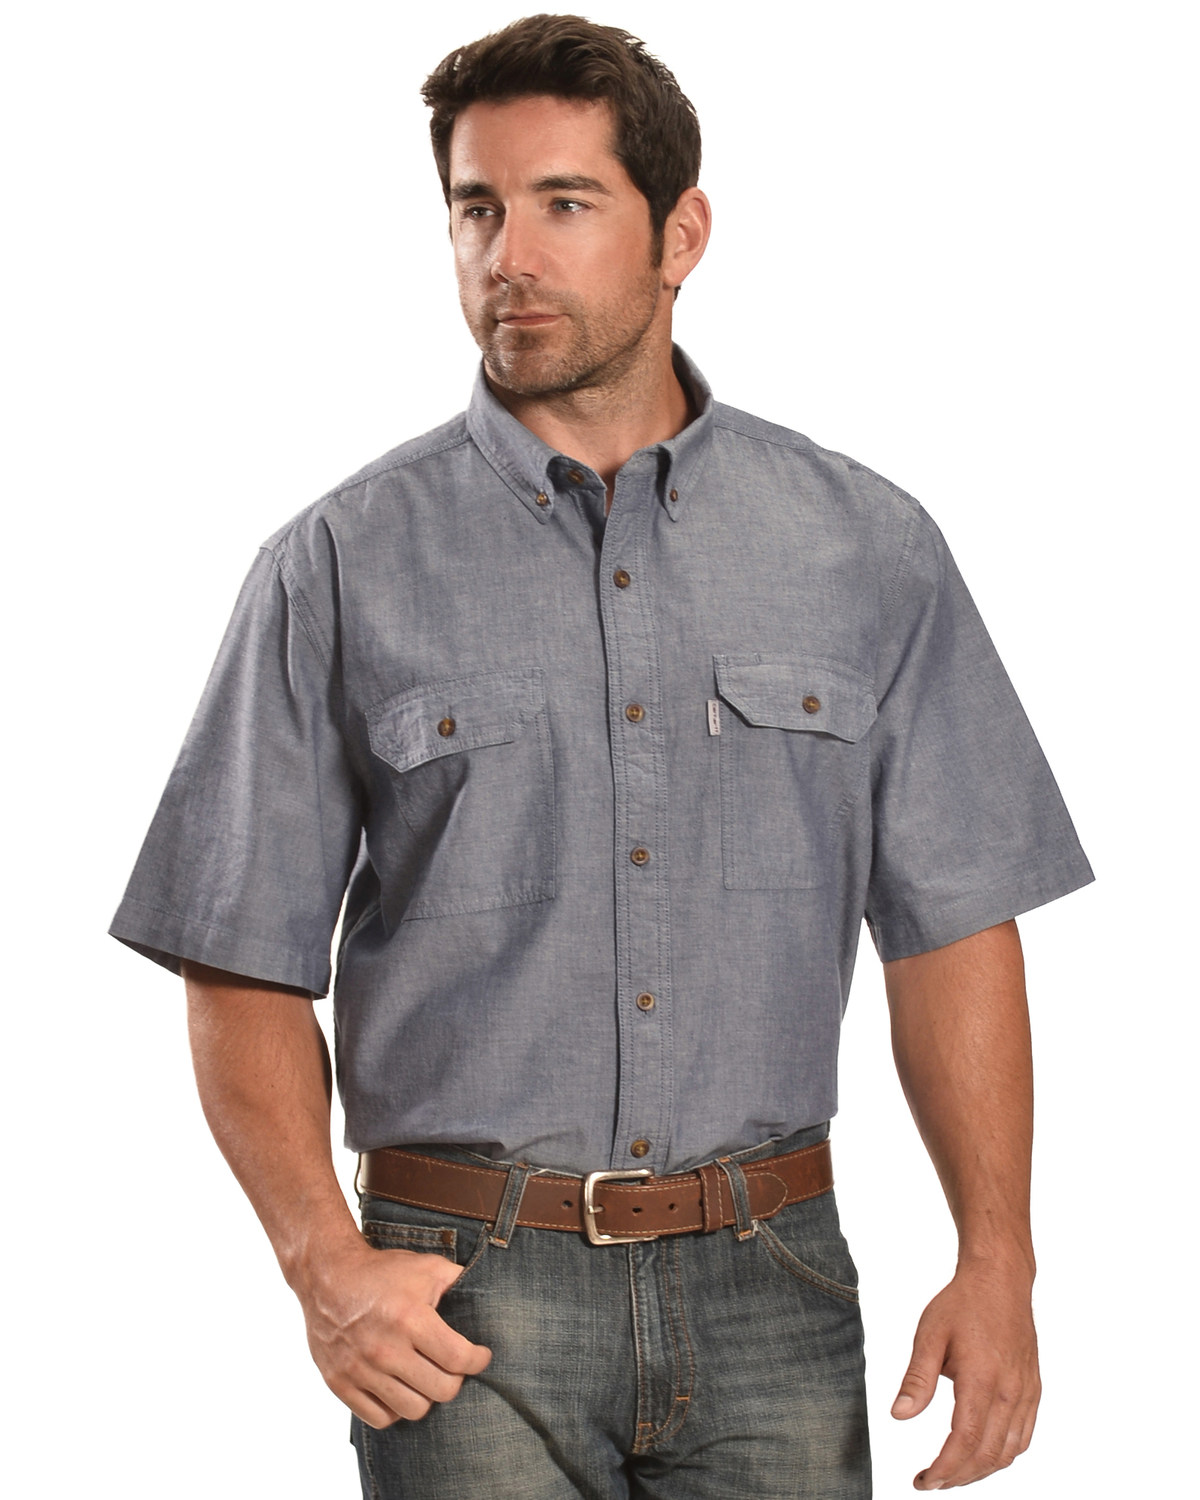 The best chambray shirts are cut to fit a bit slimmer than a dress shirt, and they should work to layer over your favorite henley or crewneck tee, or be rocked on their own to the beach.